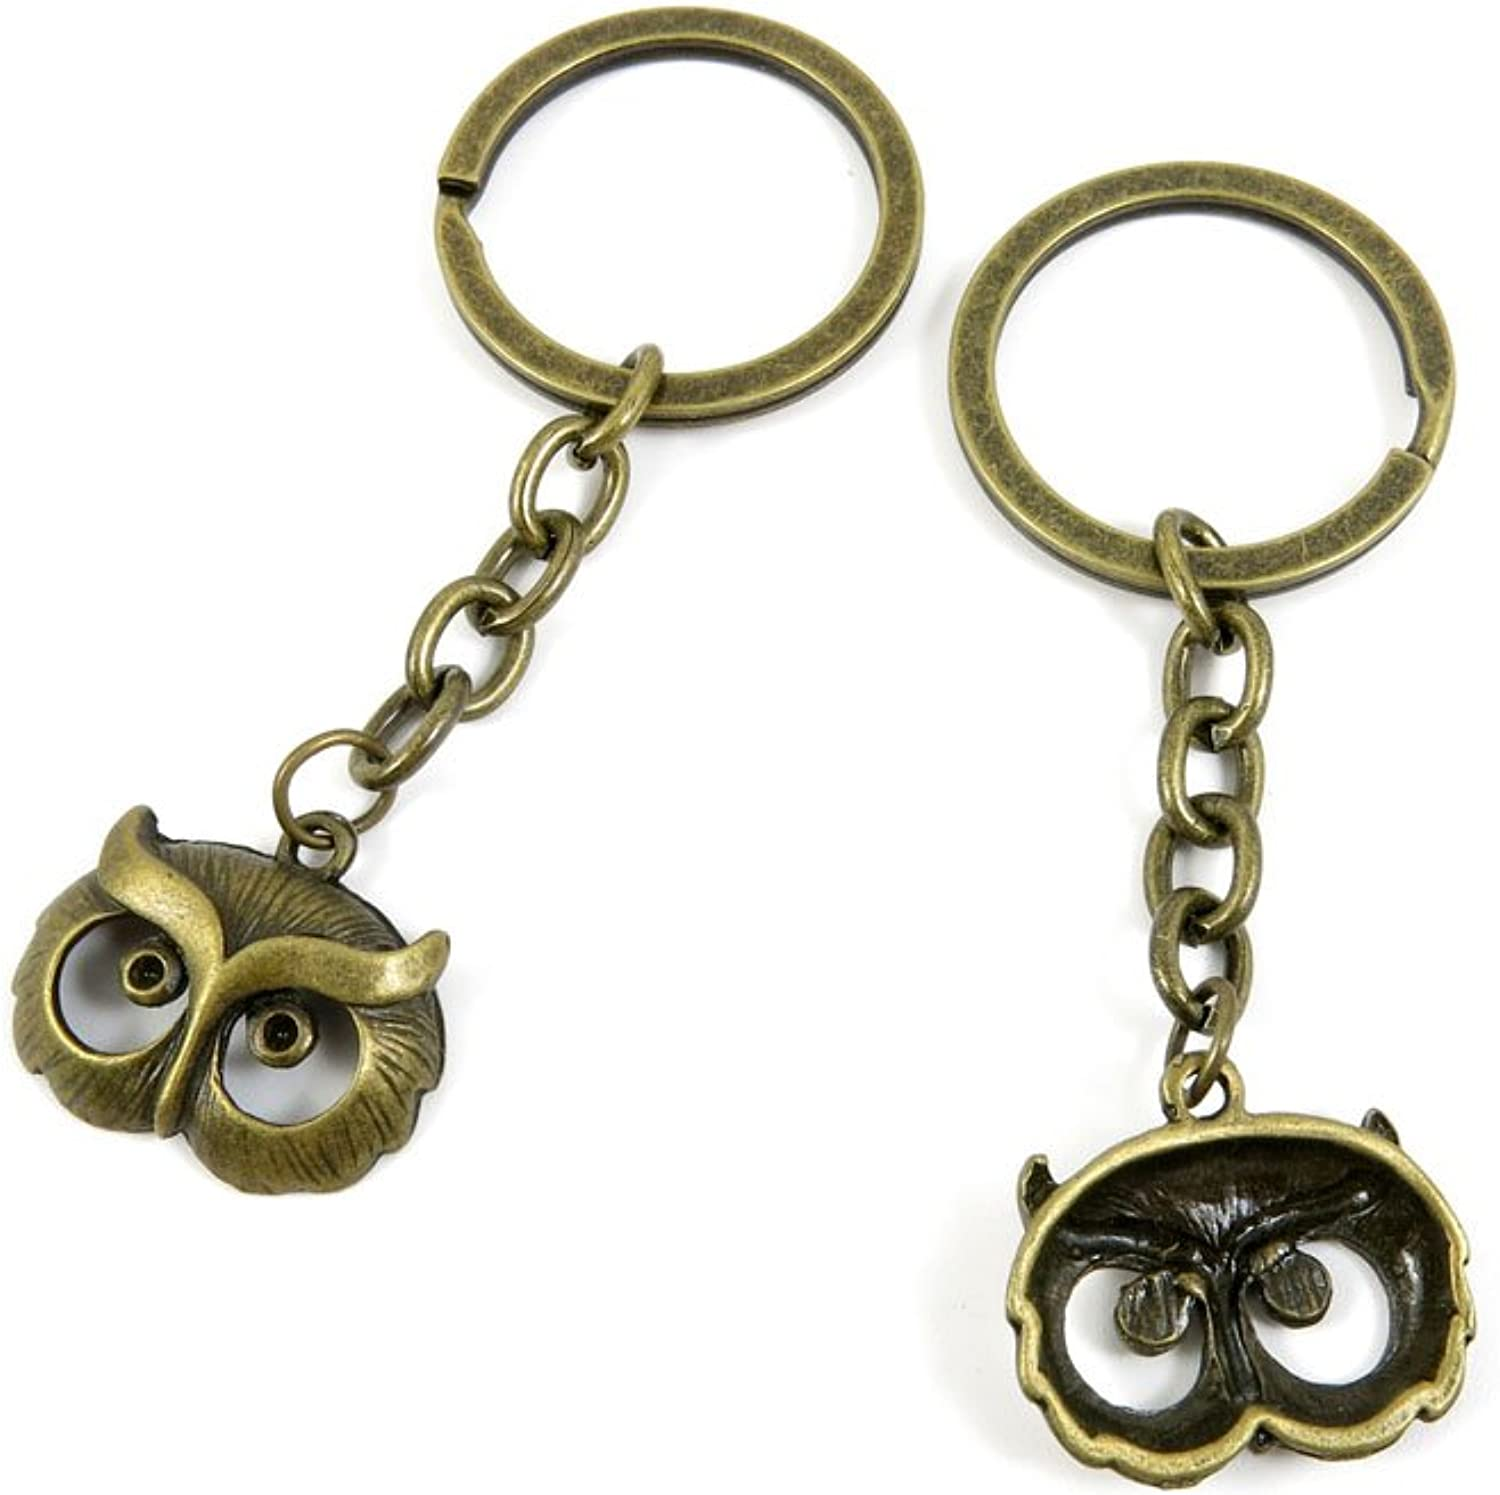 100 PCS Keyrings Keychains Key Ring Chains Tags Jewelry Findings Clasps Buckles Supplies F4TC5 Owl